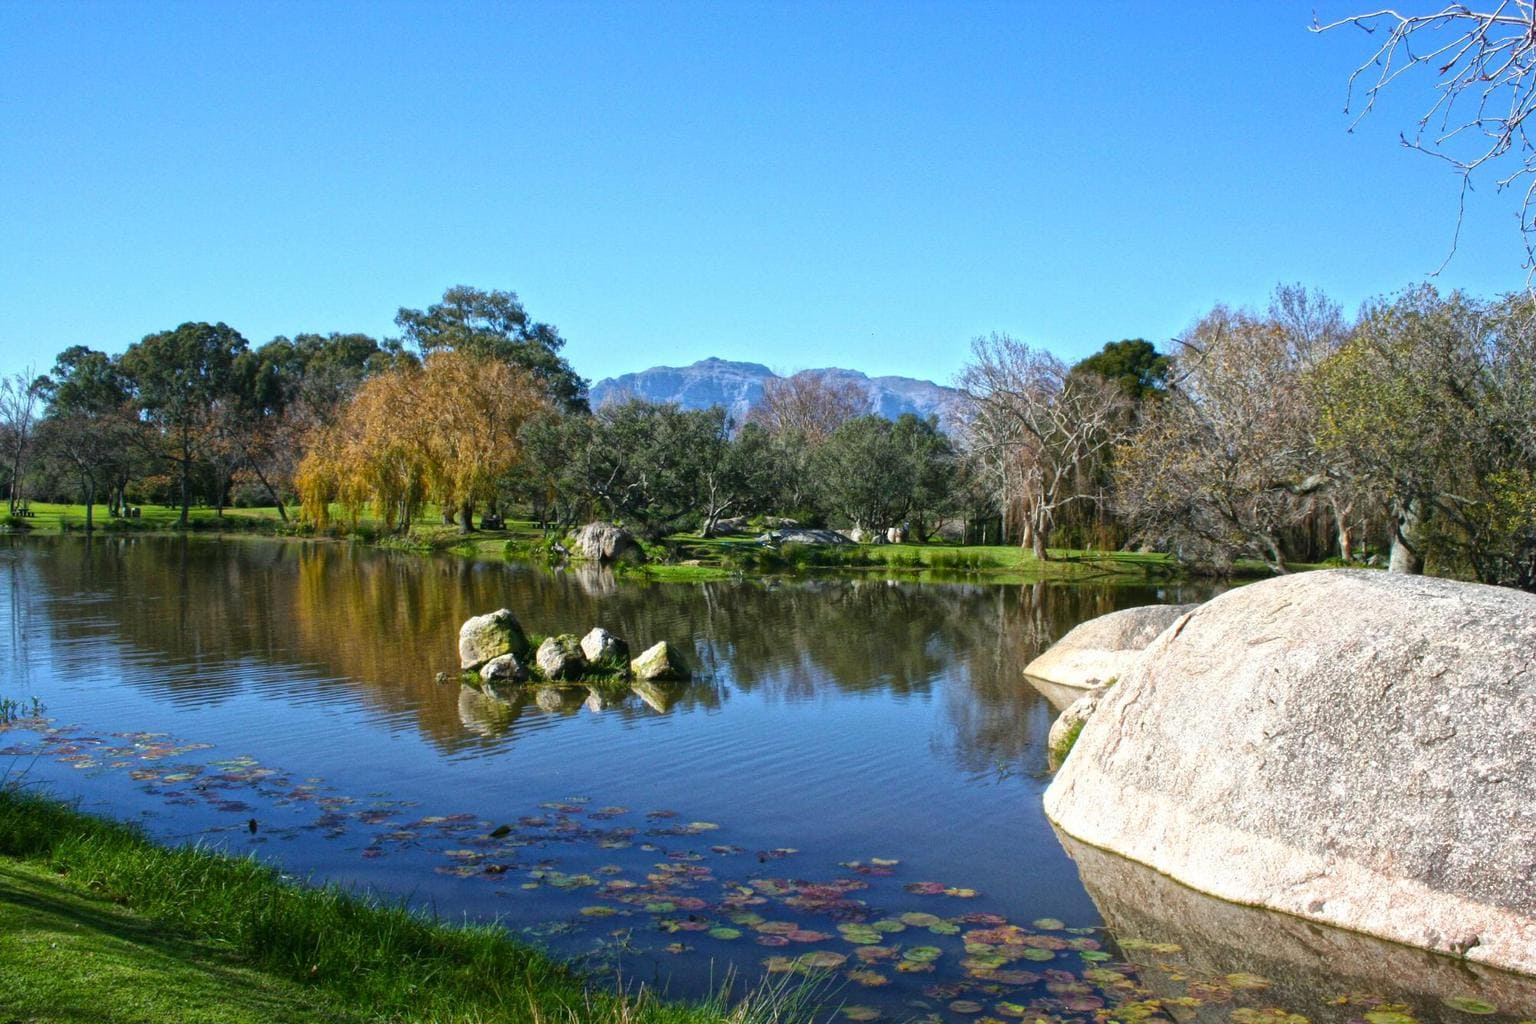 Pond views and sculptures at Spier